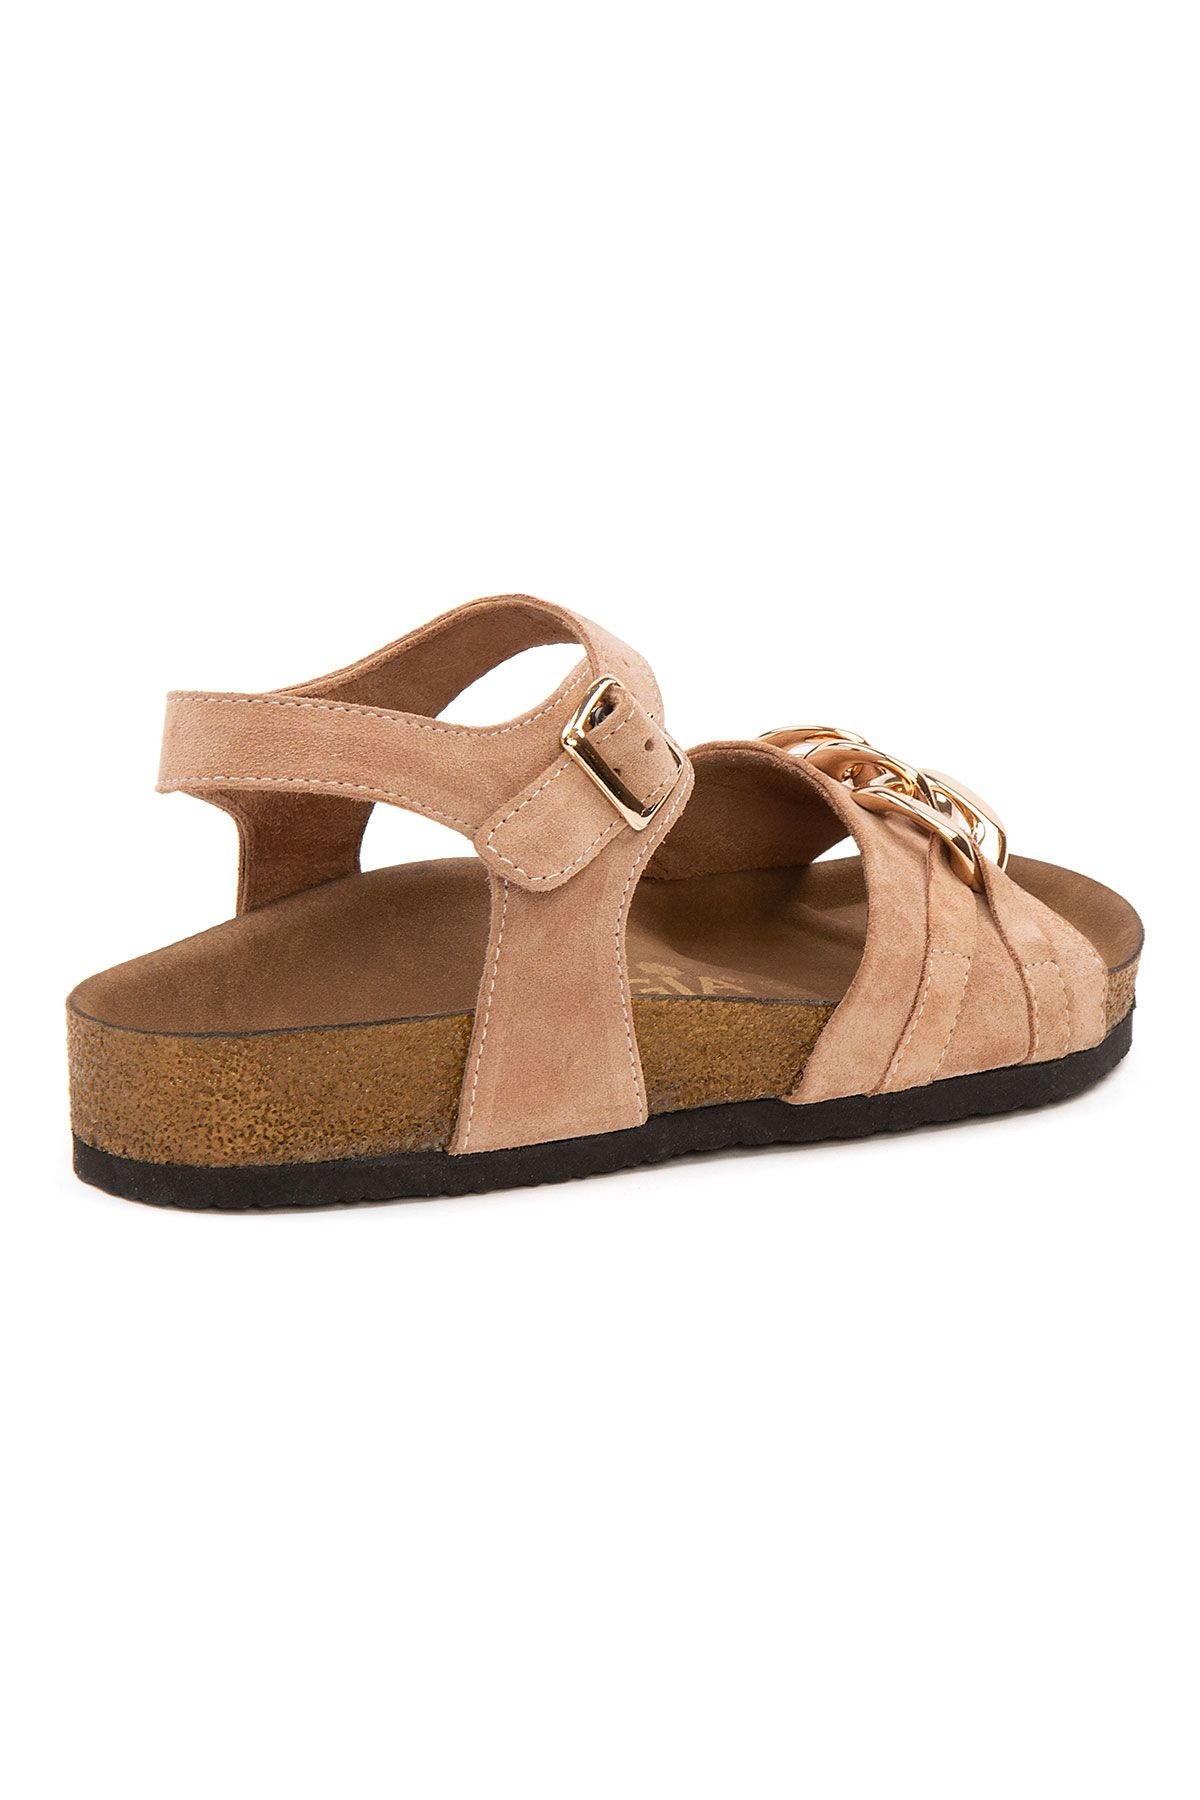 Pegia Women's Chain Detailed Suede Sandals 215533 Powdery